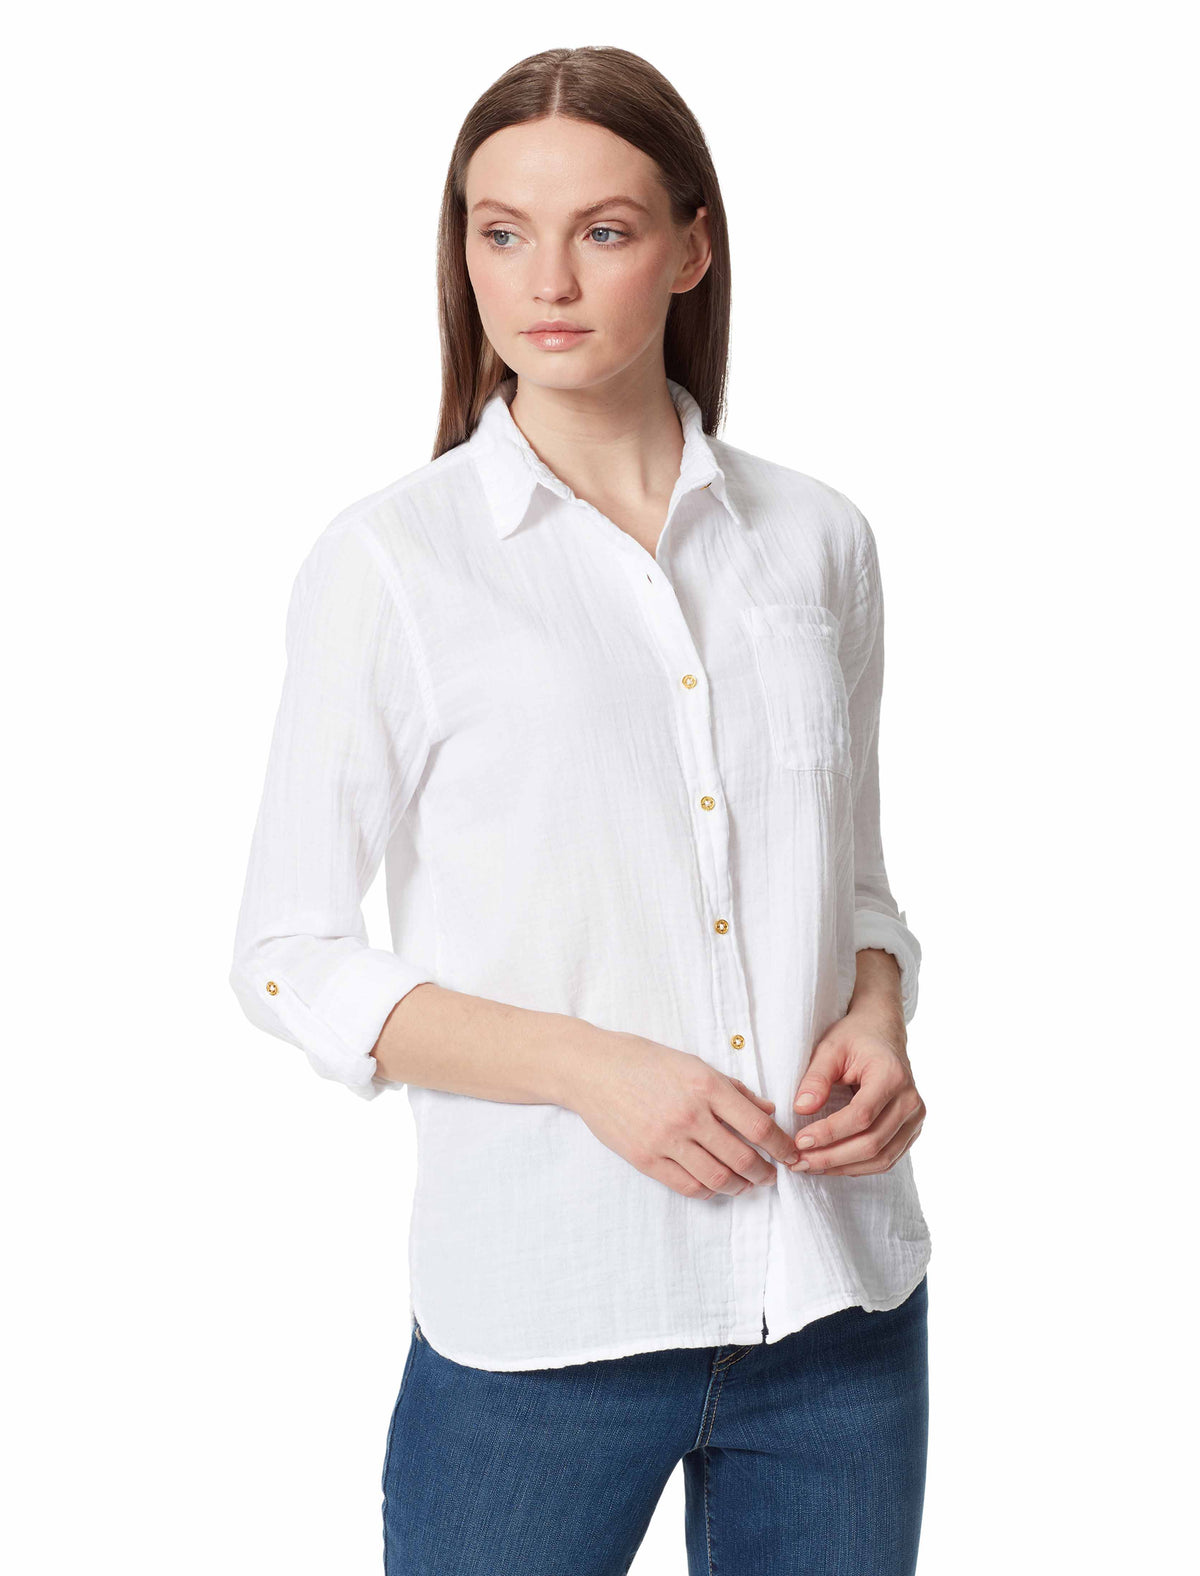 Lucile Button Down Shirt